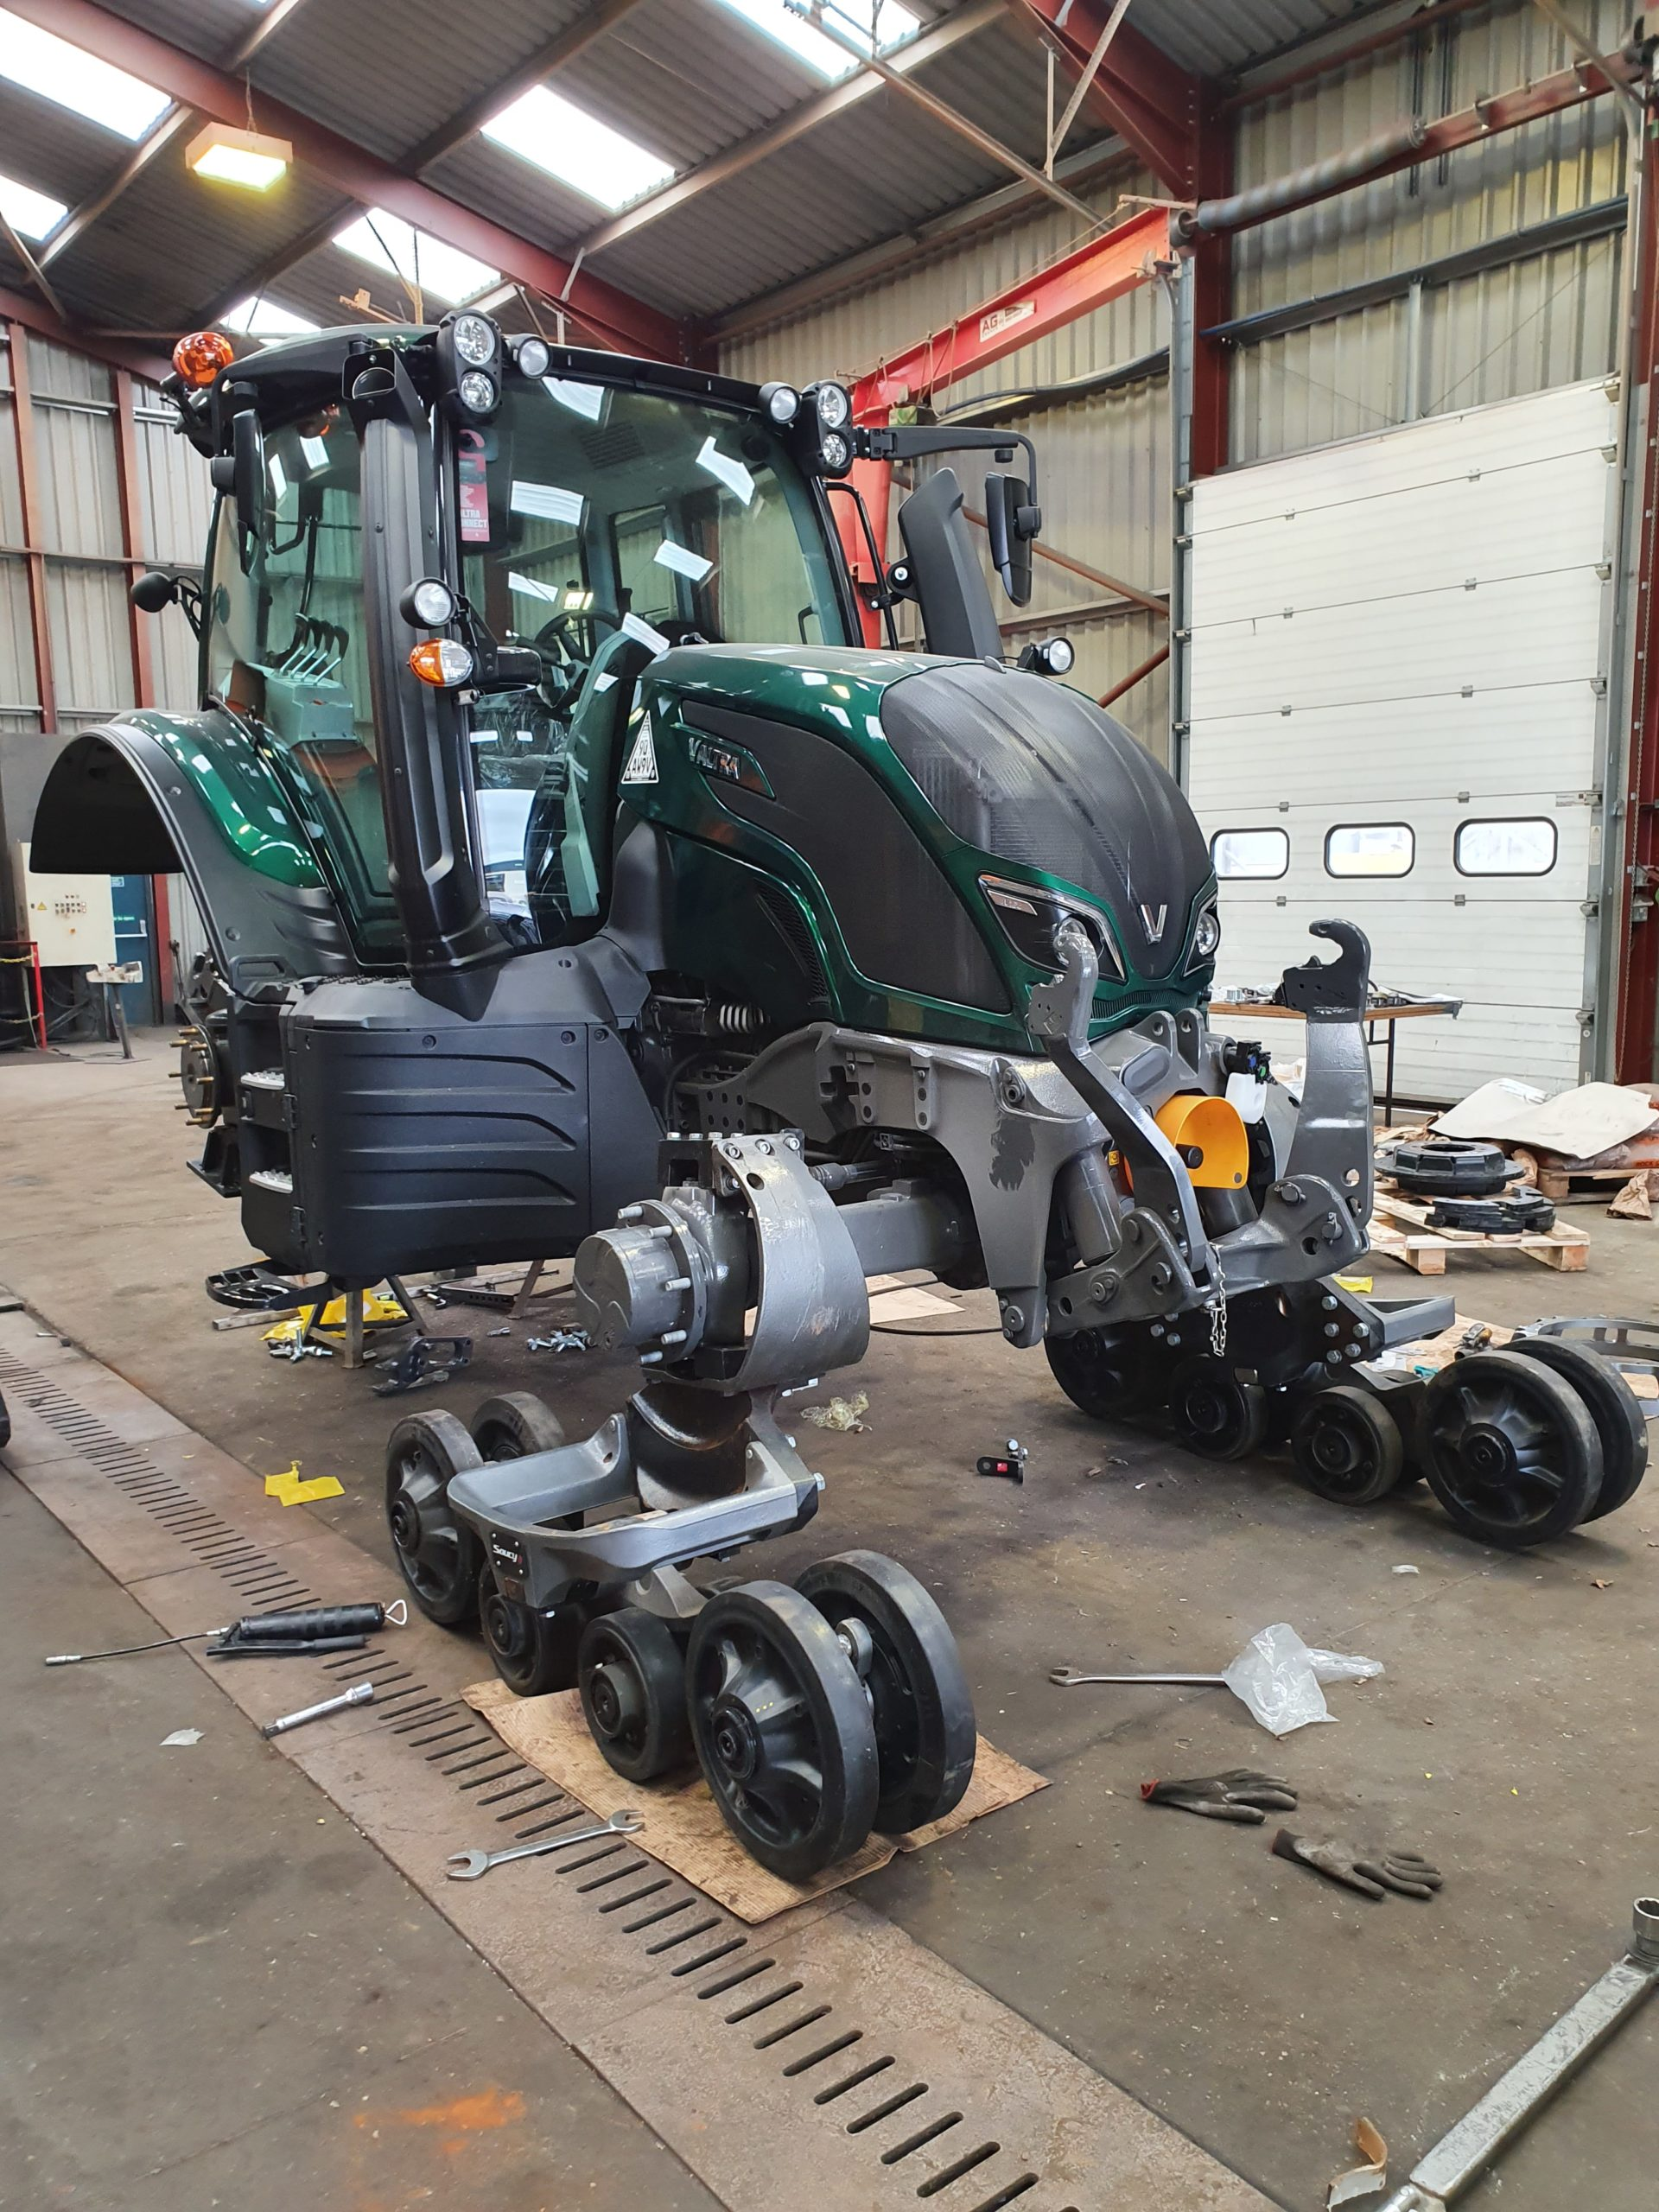 Outland Workshops have the ability to carry out complex installations.